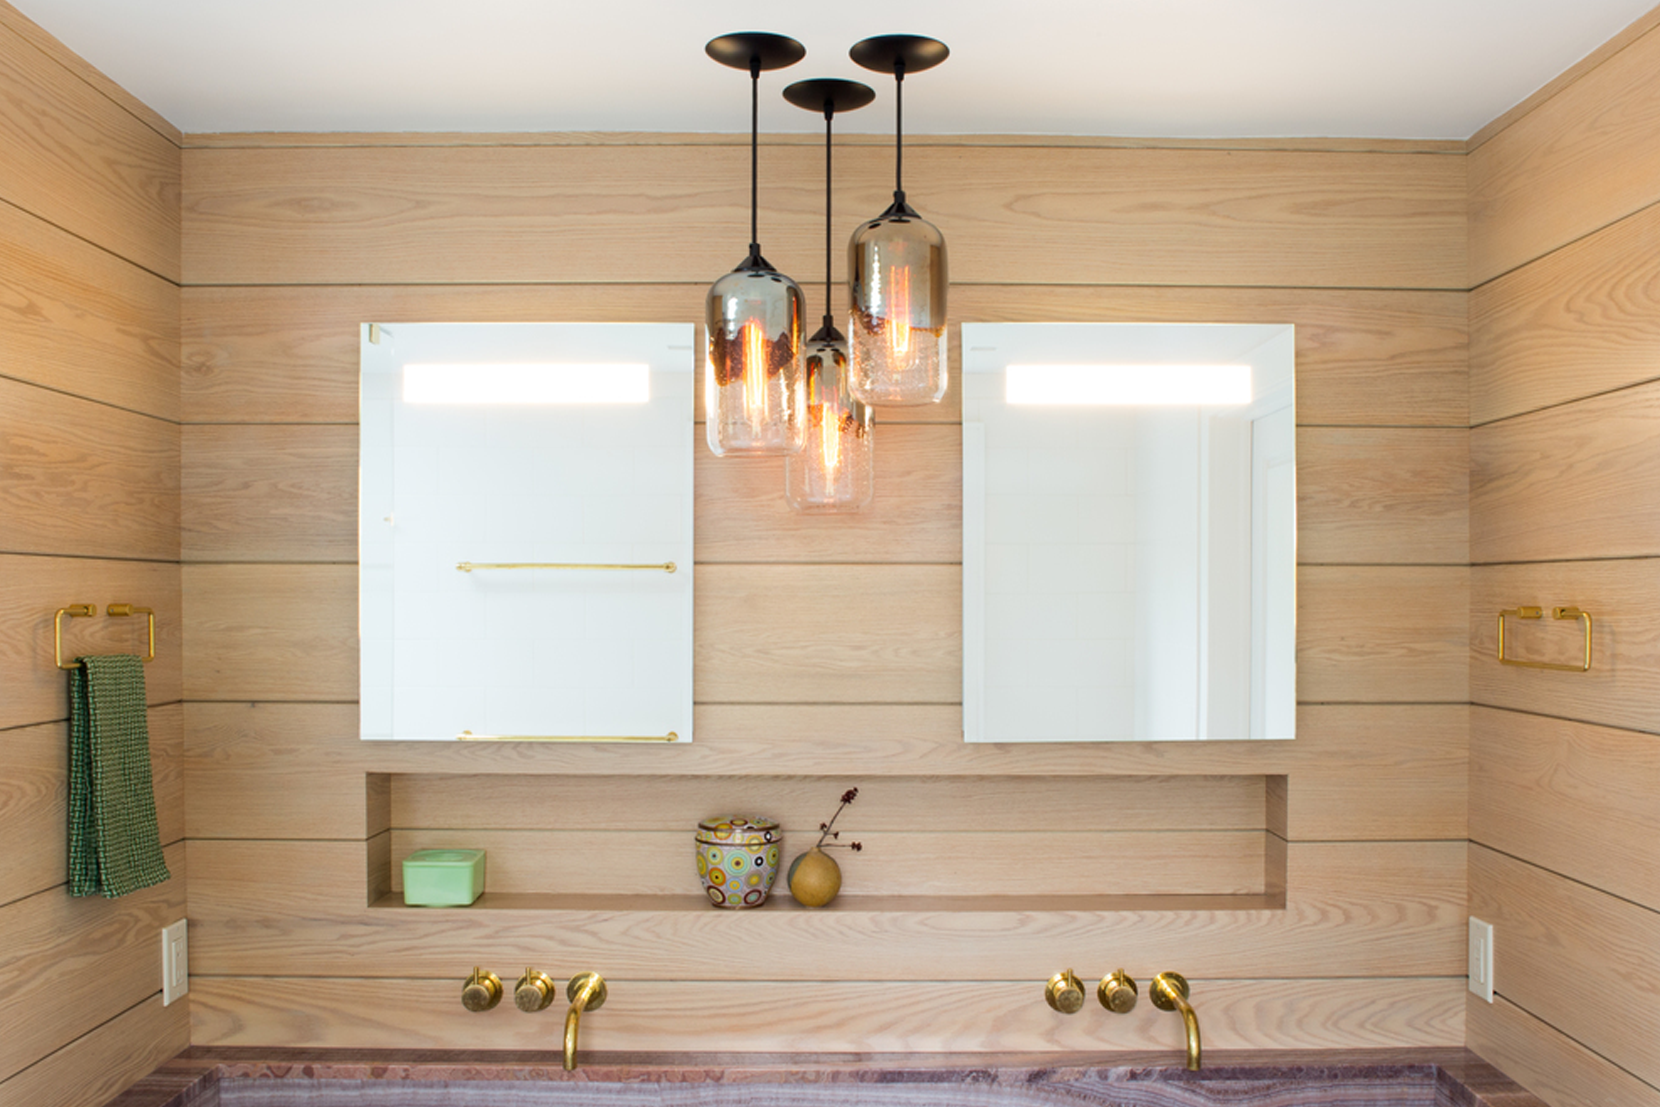 Lighting-Project-Pages_0003s_0004_Custom-Bathroom-Pendant-Lighting.png